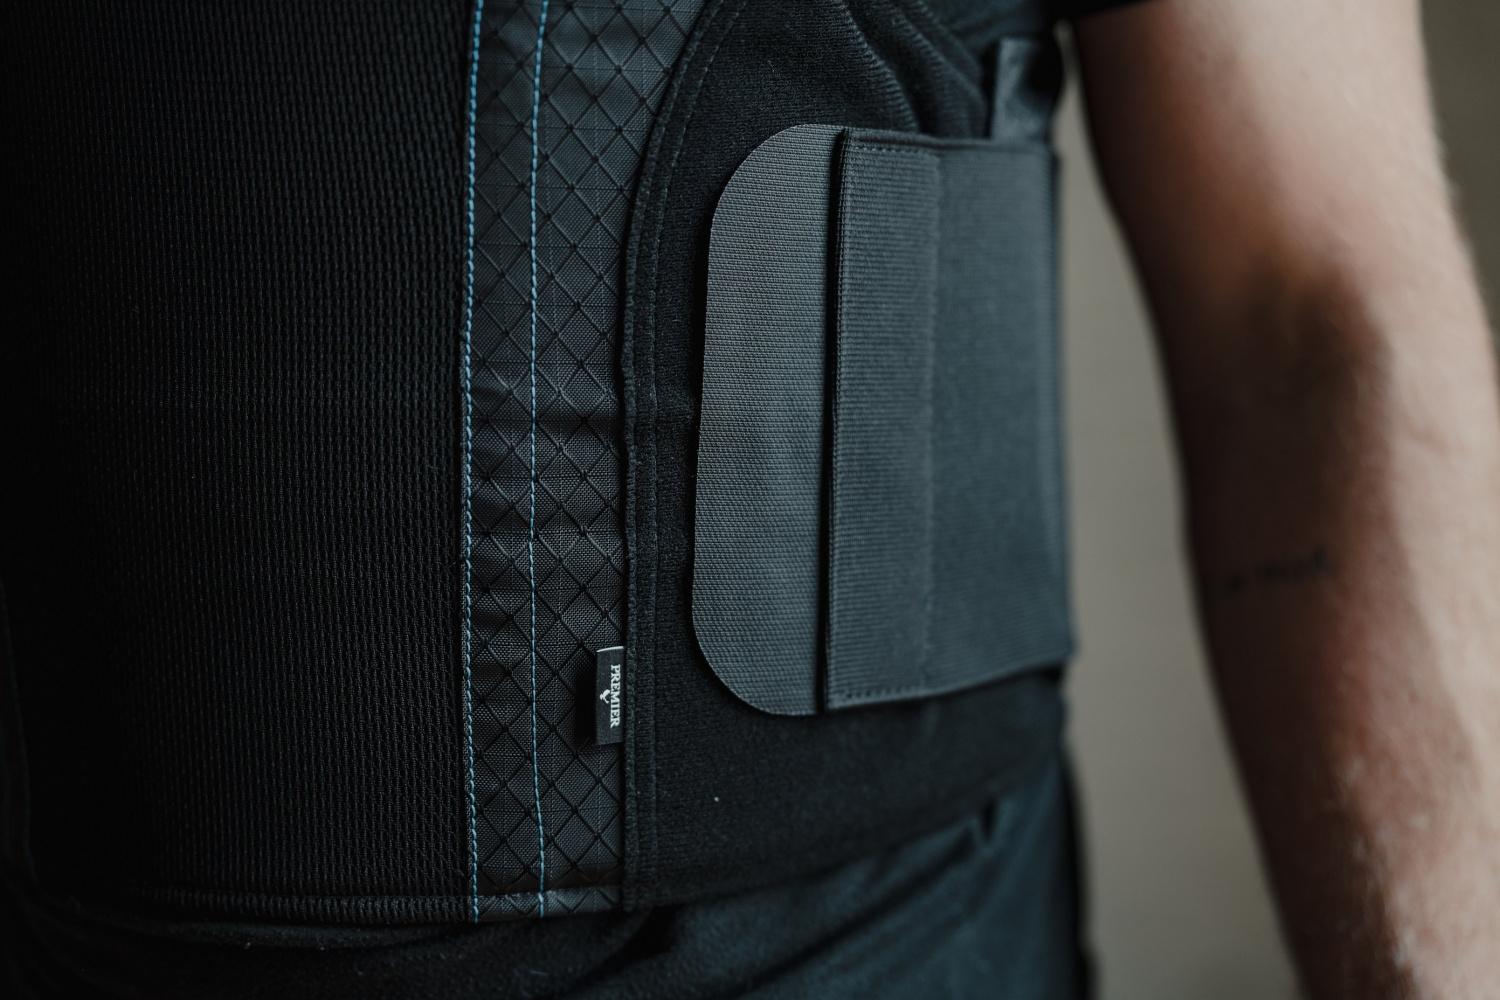 New Concealable Level IIIA Armor Vest from Premier Body Armor